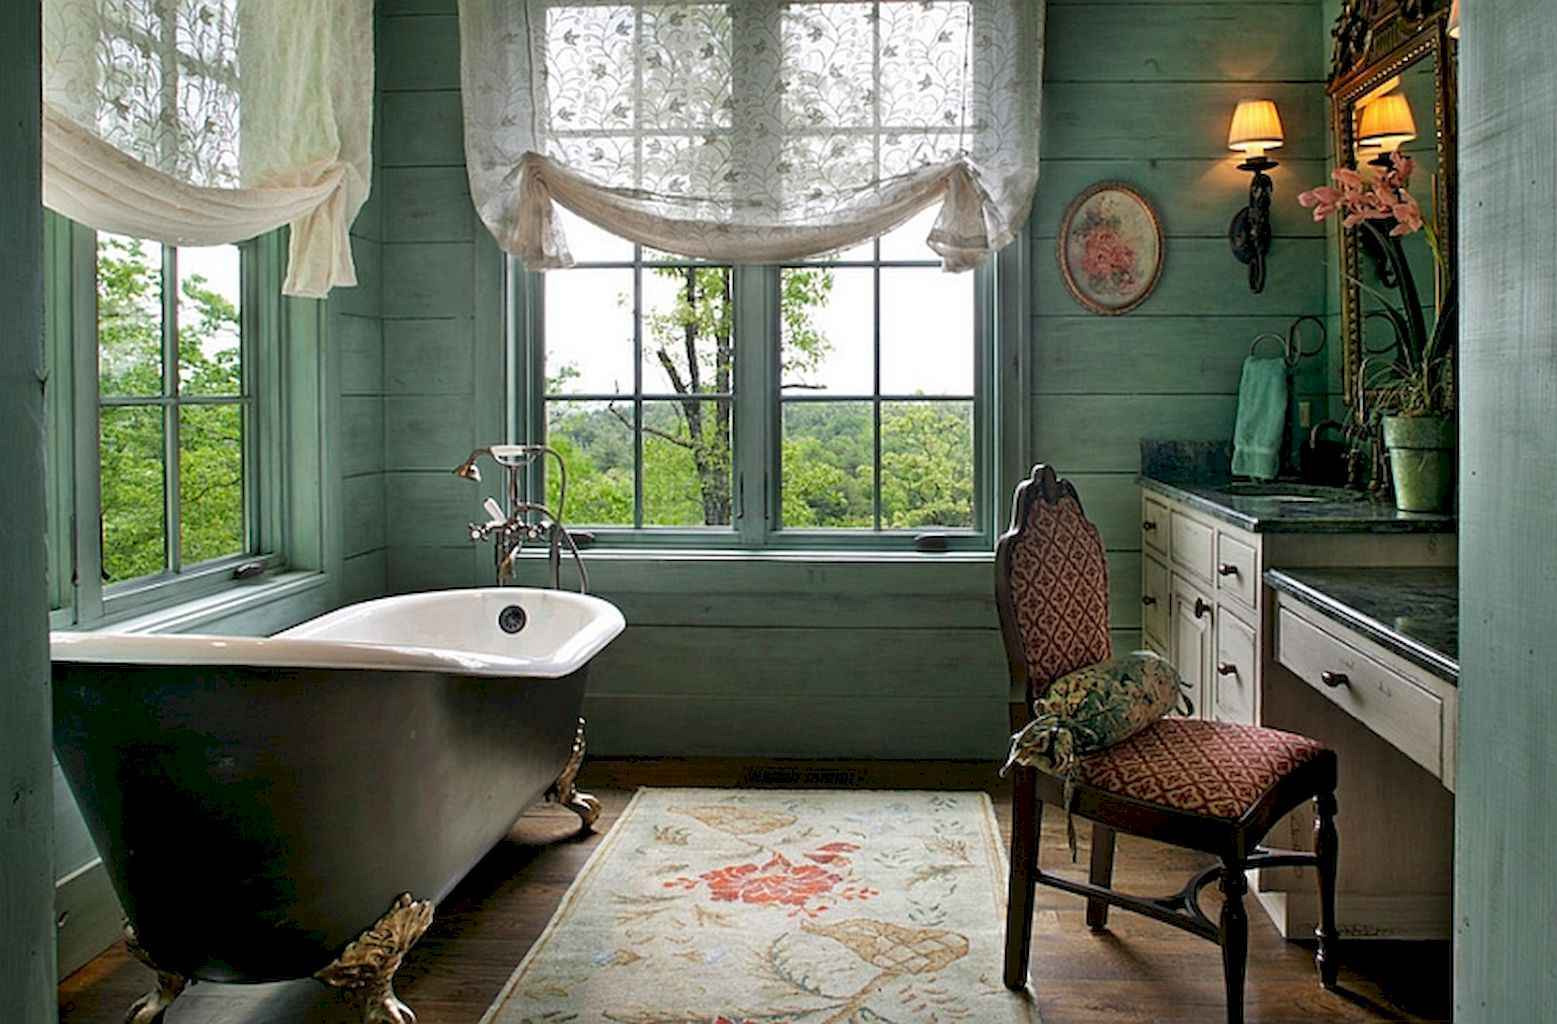 55 Cool and Relax Bathroom Decor Ideas (30)